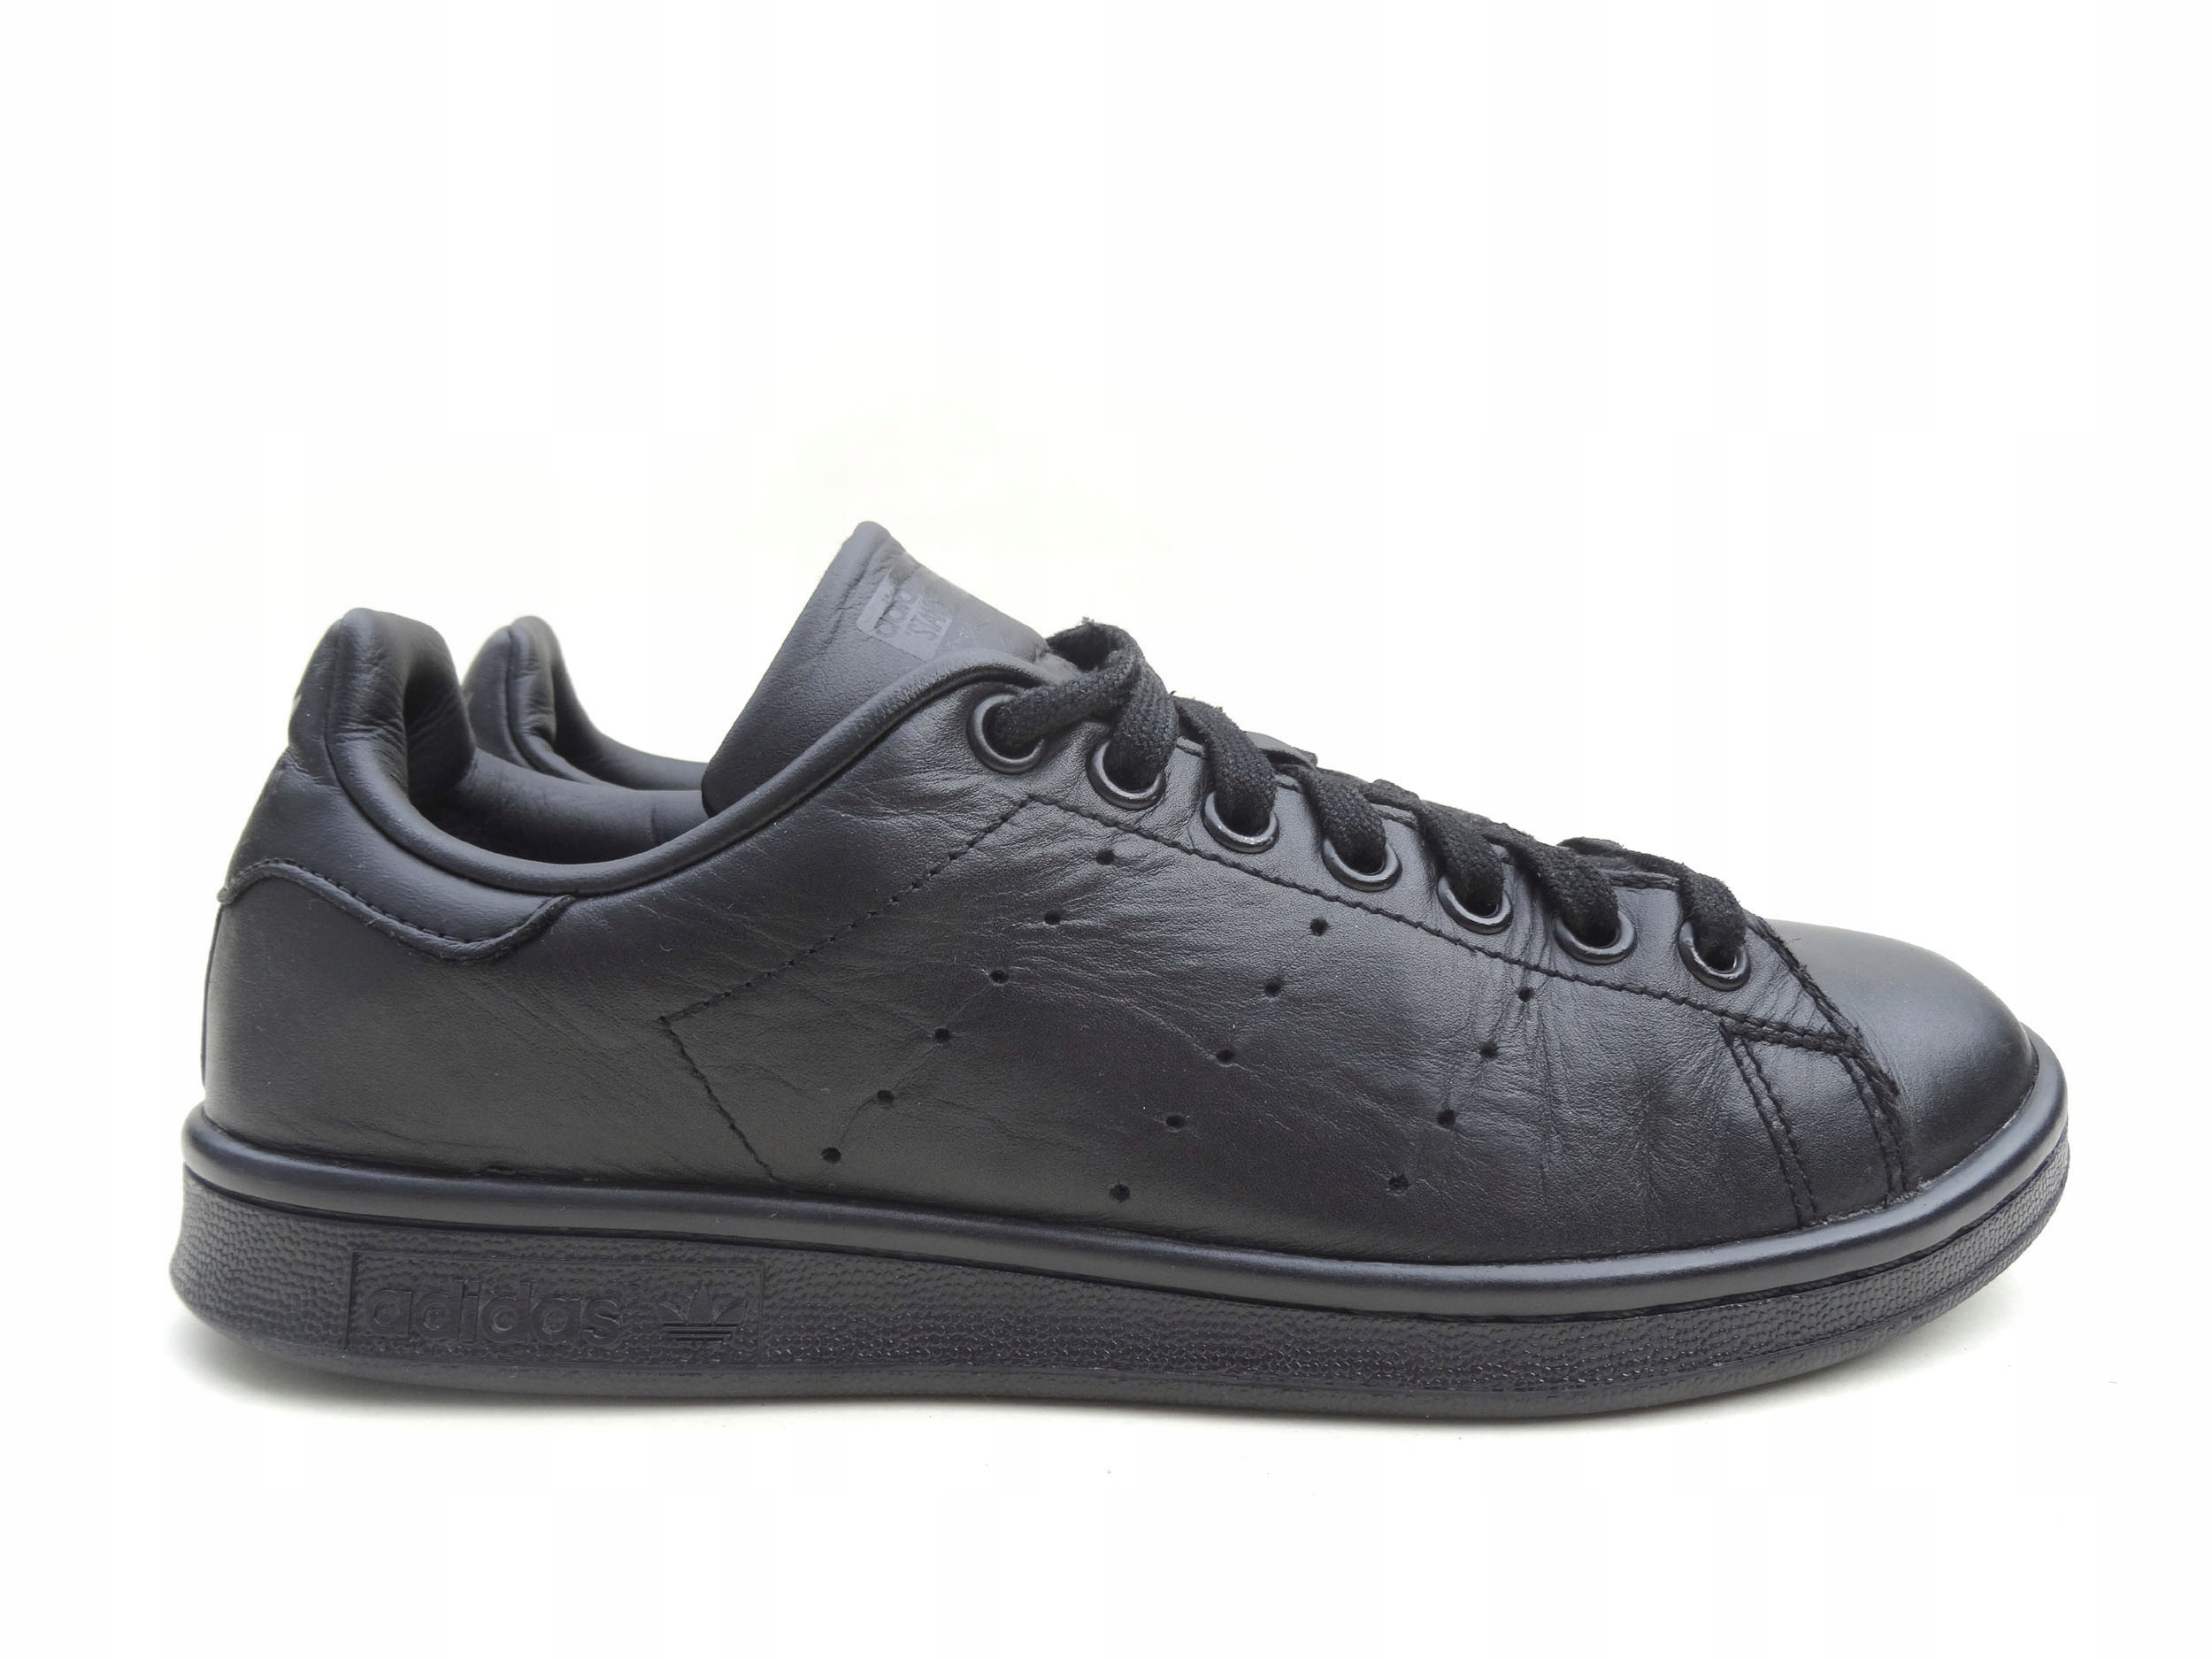 Adidas Originals Stan Smith buty sportowe 38 13